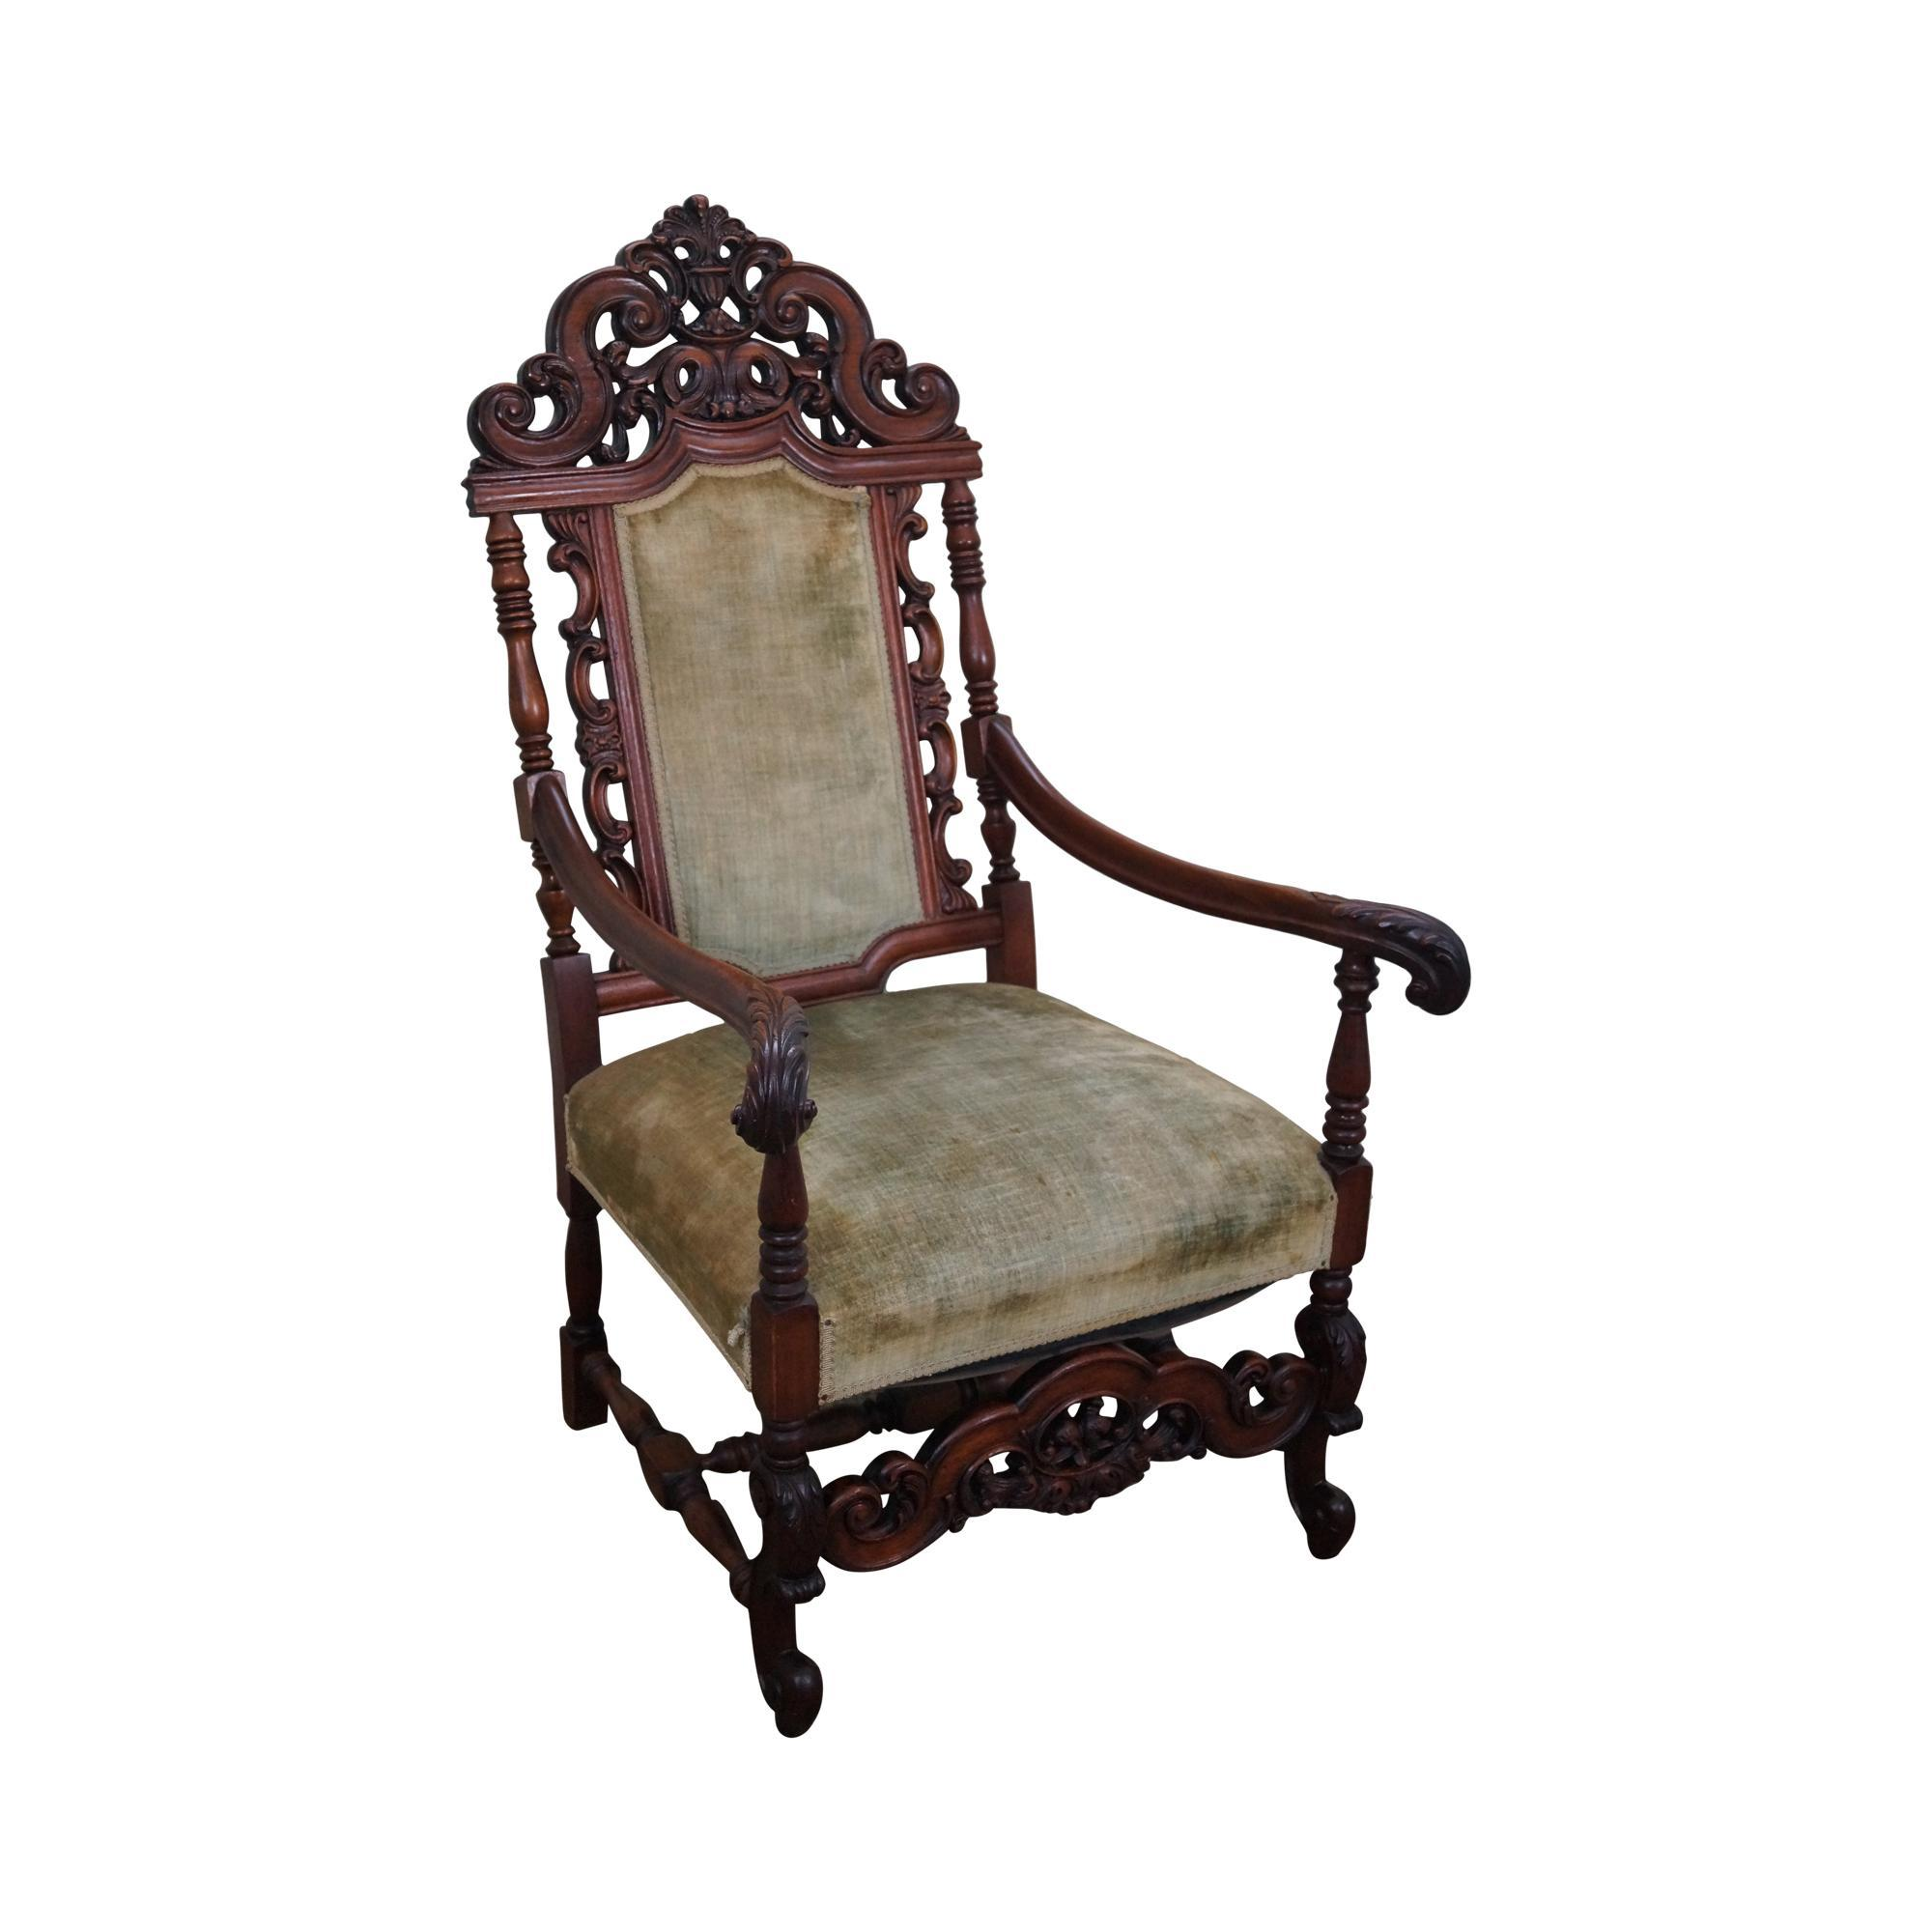 High back antique chairs - Antique 19th Century Heavily Carved Solid Mahogany Renaissance High Back Throne Arm Chair